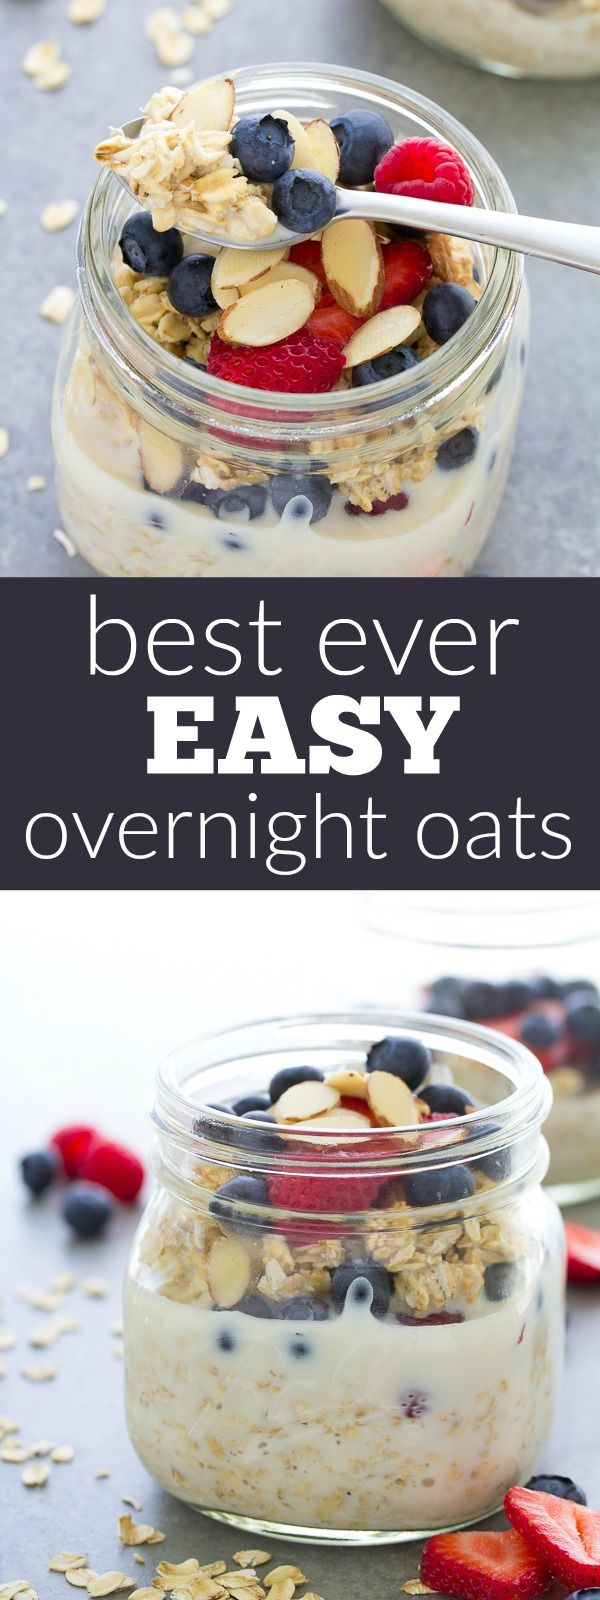 Our favorite easy overnight oats recipe, made with just 4 ingredients and a touch of vanilla. We love this healthy oatmeal topped with fresh berries and almonds! kristineskitchenblog.com